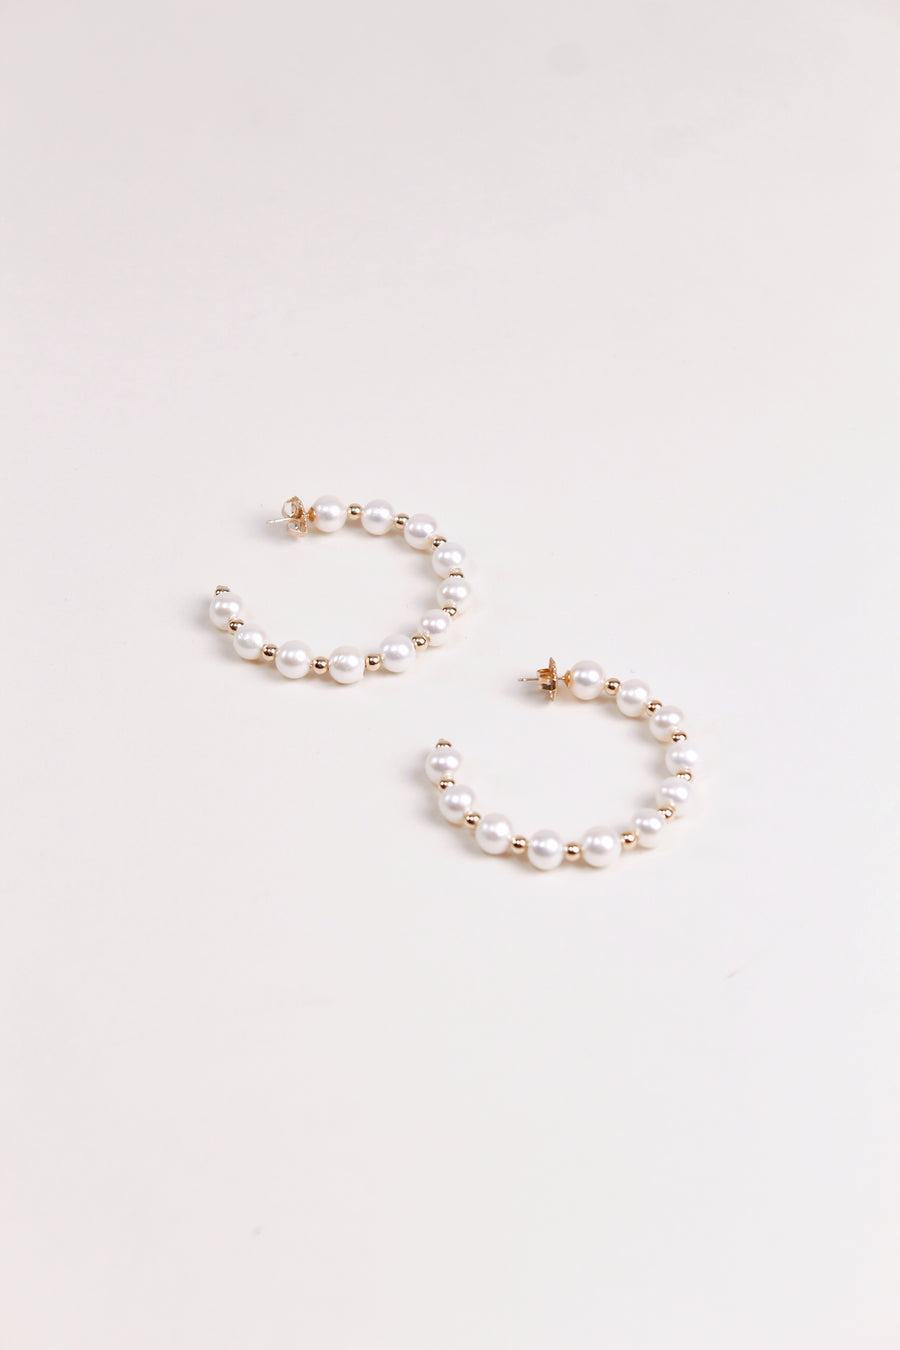 Maldives Pearl Hoop Earrings - The Beach Bride by Chic Parisien, a destination for beach weddings, bachelorettes and honeymoons